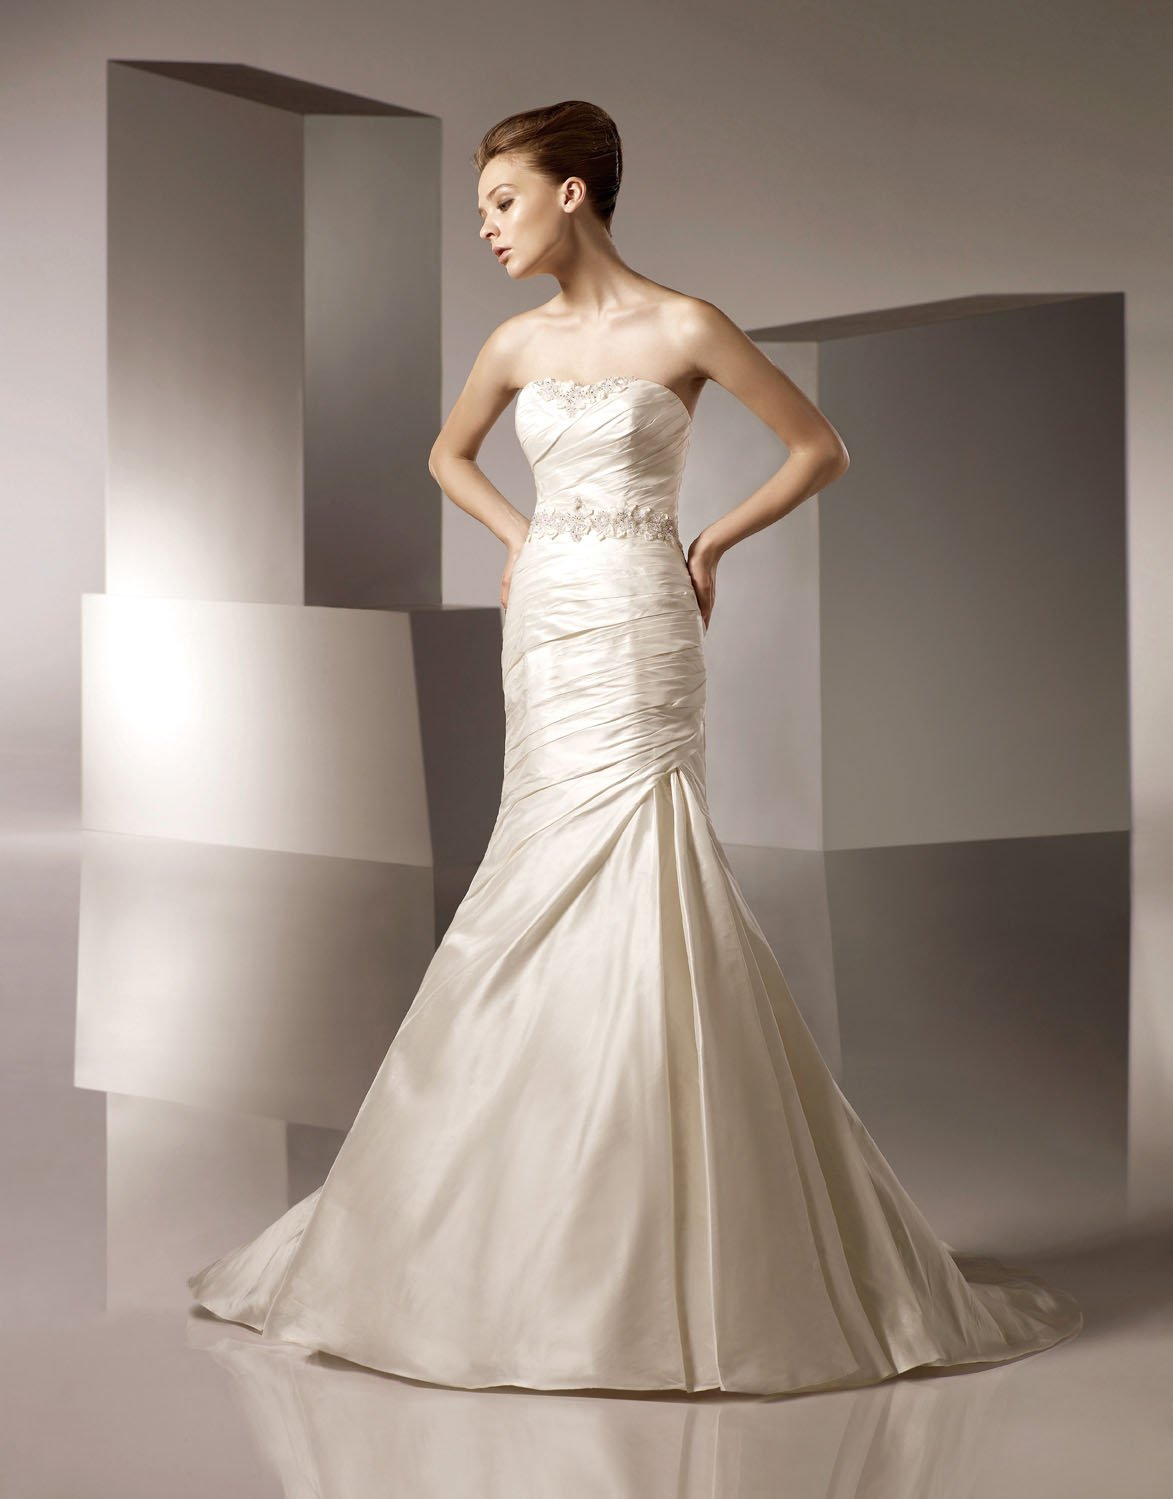 Mermaid Straight Neckline Appliqued Beading Lace-up Taffeta Wedding Dress Bridal Gown aq0025